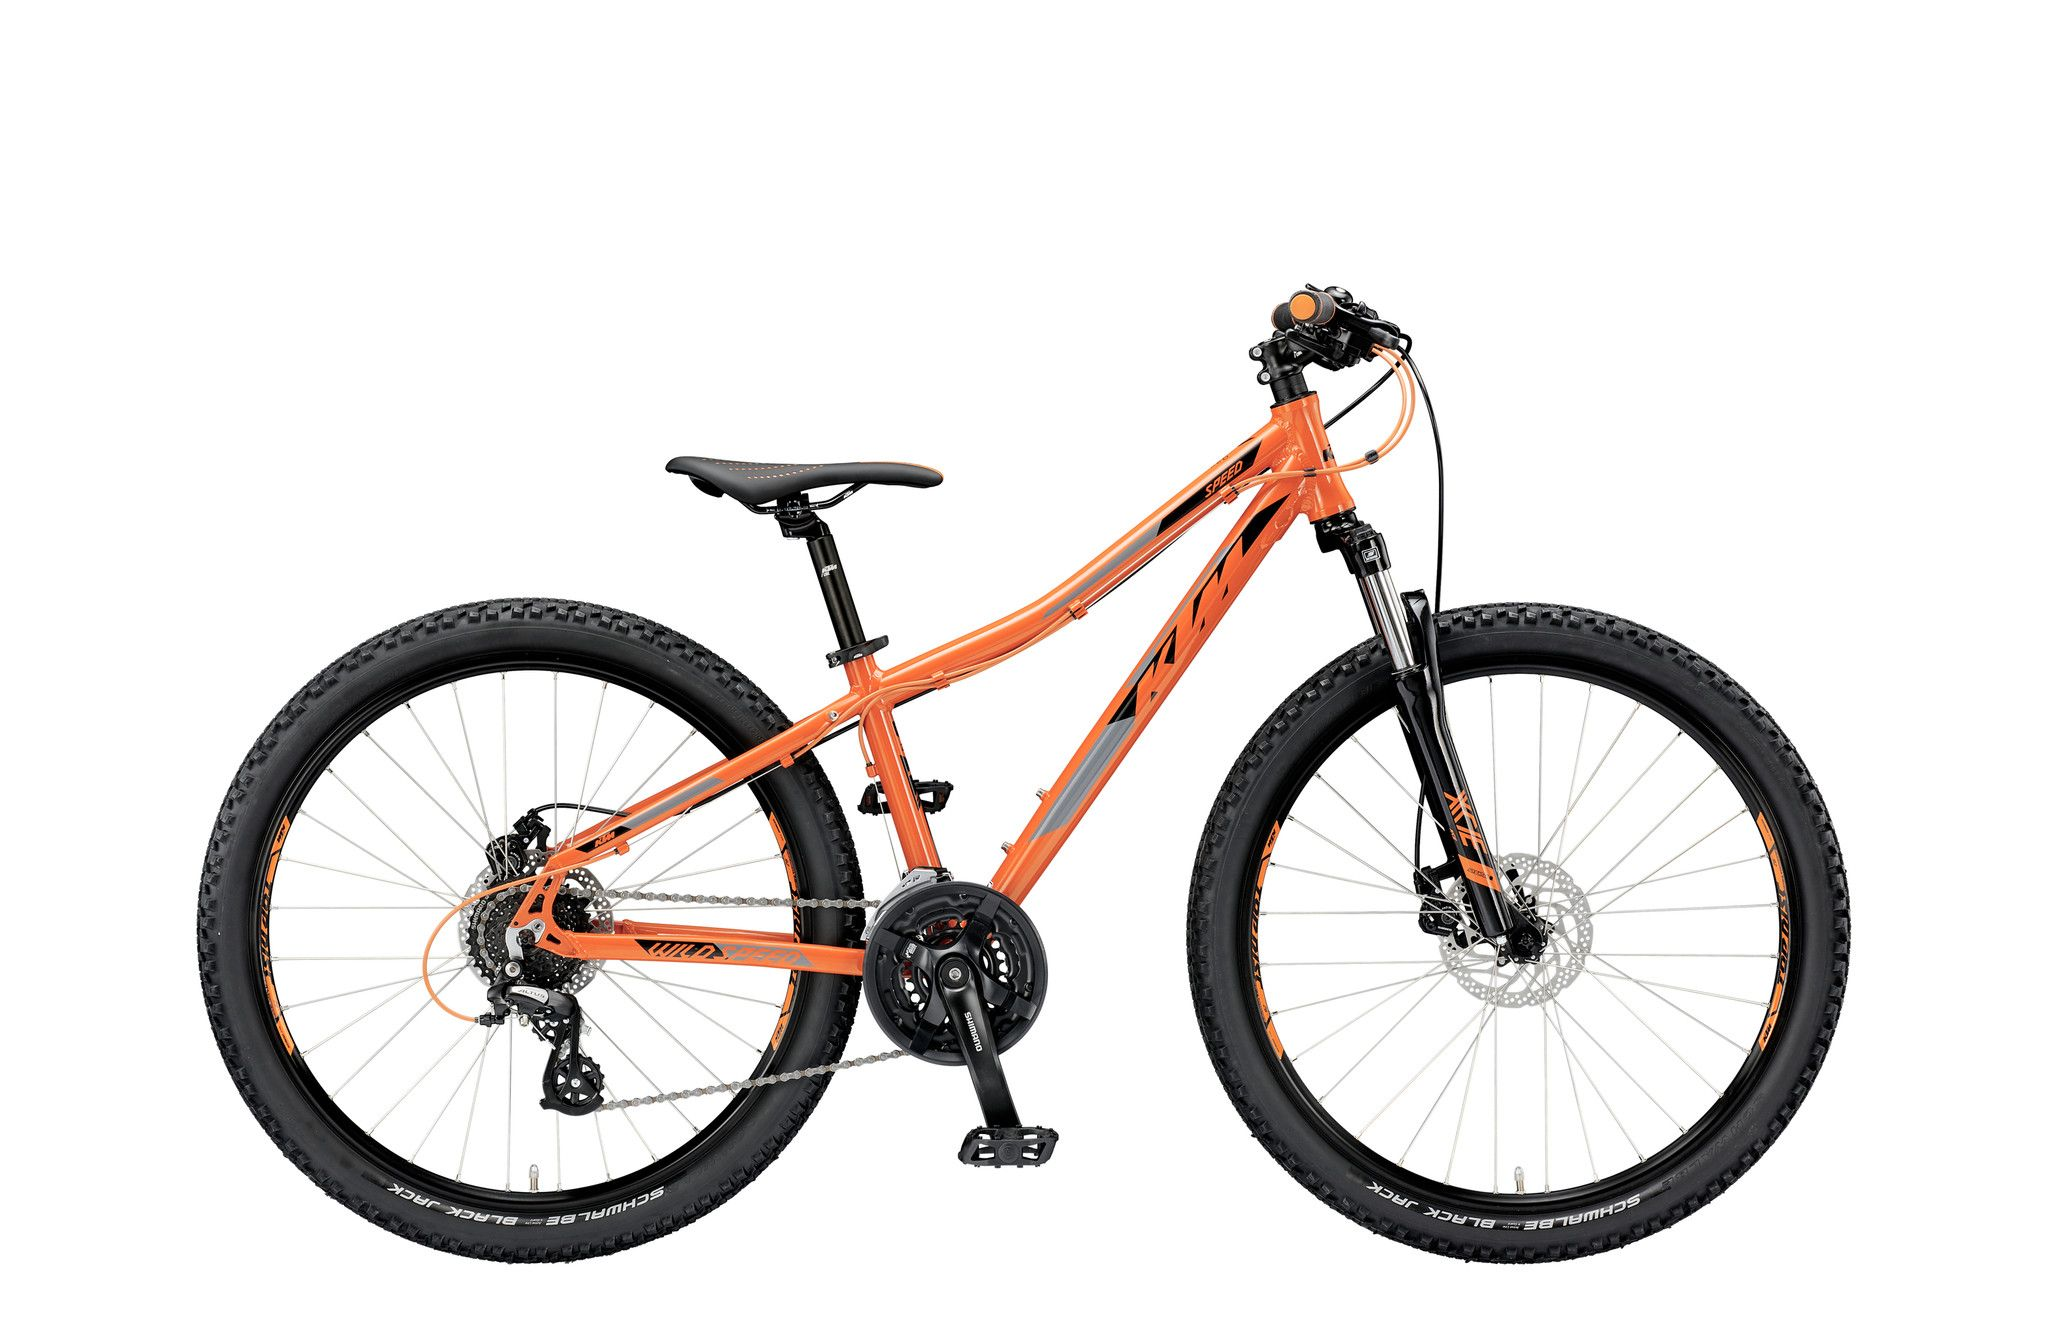 BICICLETTA KTM WILD SPEED 26 MECC. DISC